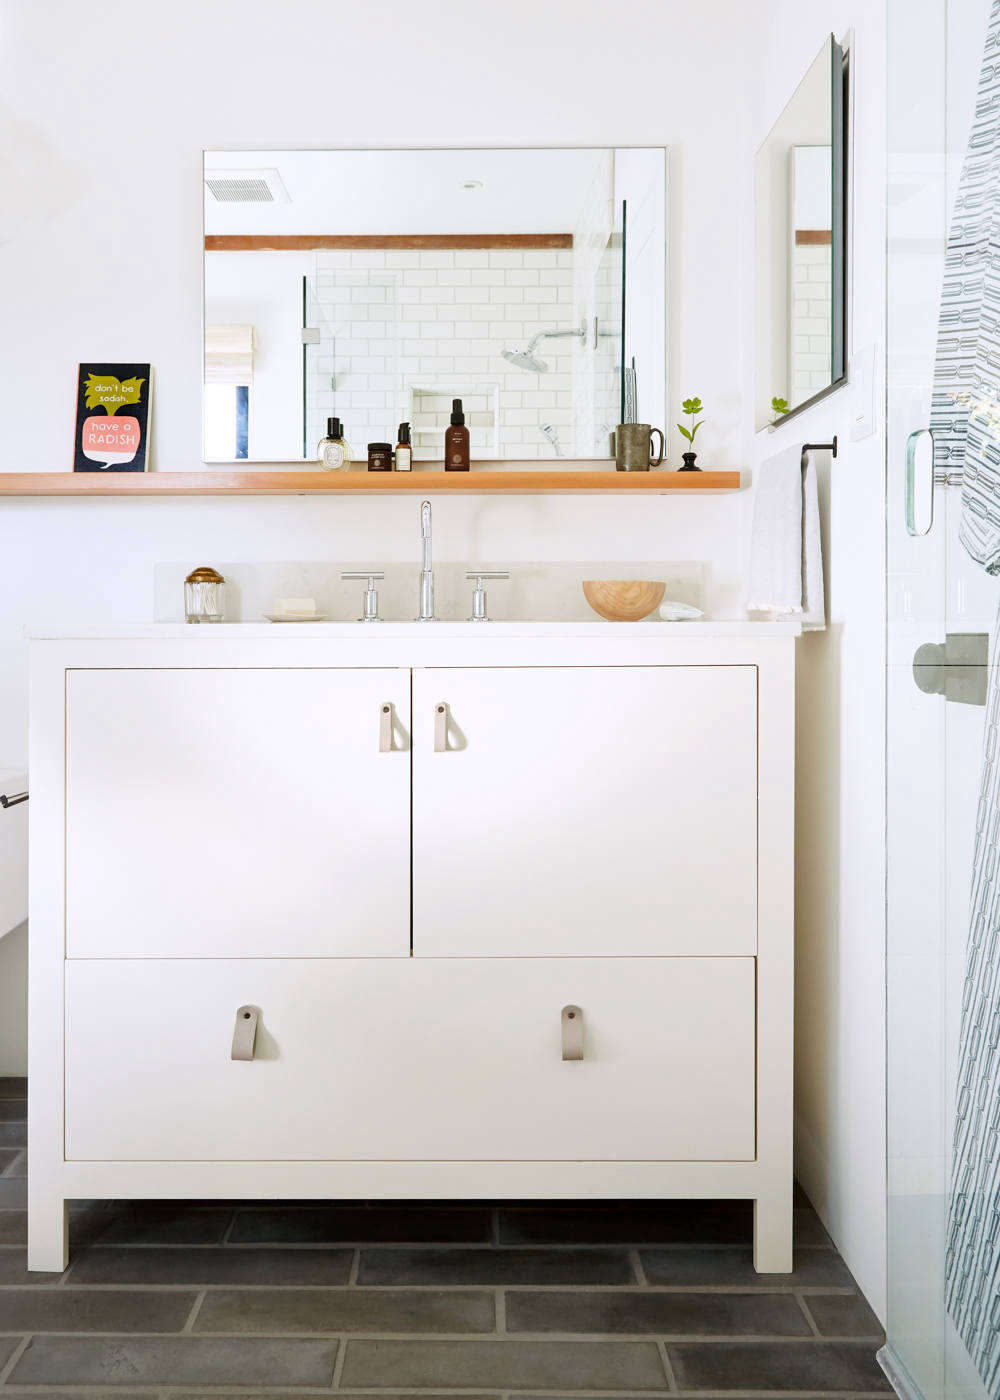 """Look closely and you'll see that the shower door has an oval cutout pull: """"The space between the vanity and shower door is not terribly wide, so I spec'd a cutout in the glass to avoid a protruding handle."""" The sink console was made by Alfredo Garcia of H & H Cabinet in Oakland and painted in Farrow & Ball Dimity. The gray leather looppulls are from 3 Twenty Leatherworks, and the sink fixtures areKohler Purist in polished chrome. The sink counter is IRG Pental Quartz in Lattice. The24-by-36-inch Infinity Mirror mounted over the sink is from CB2."""